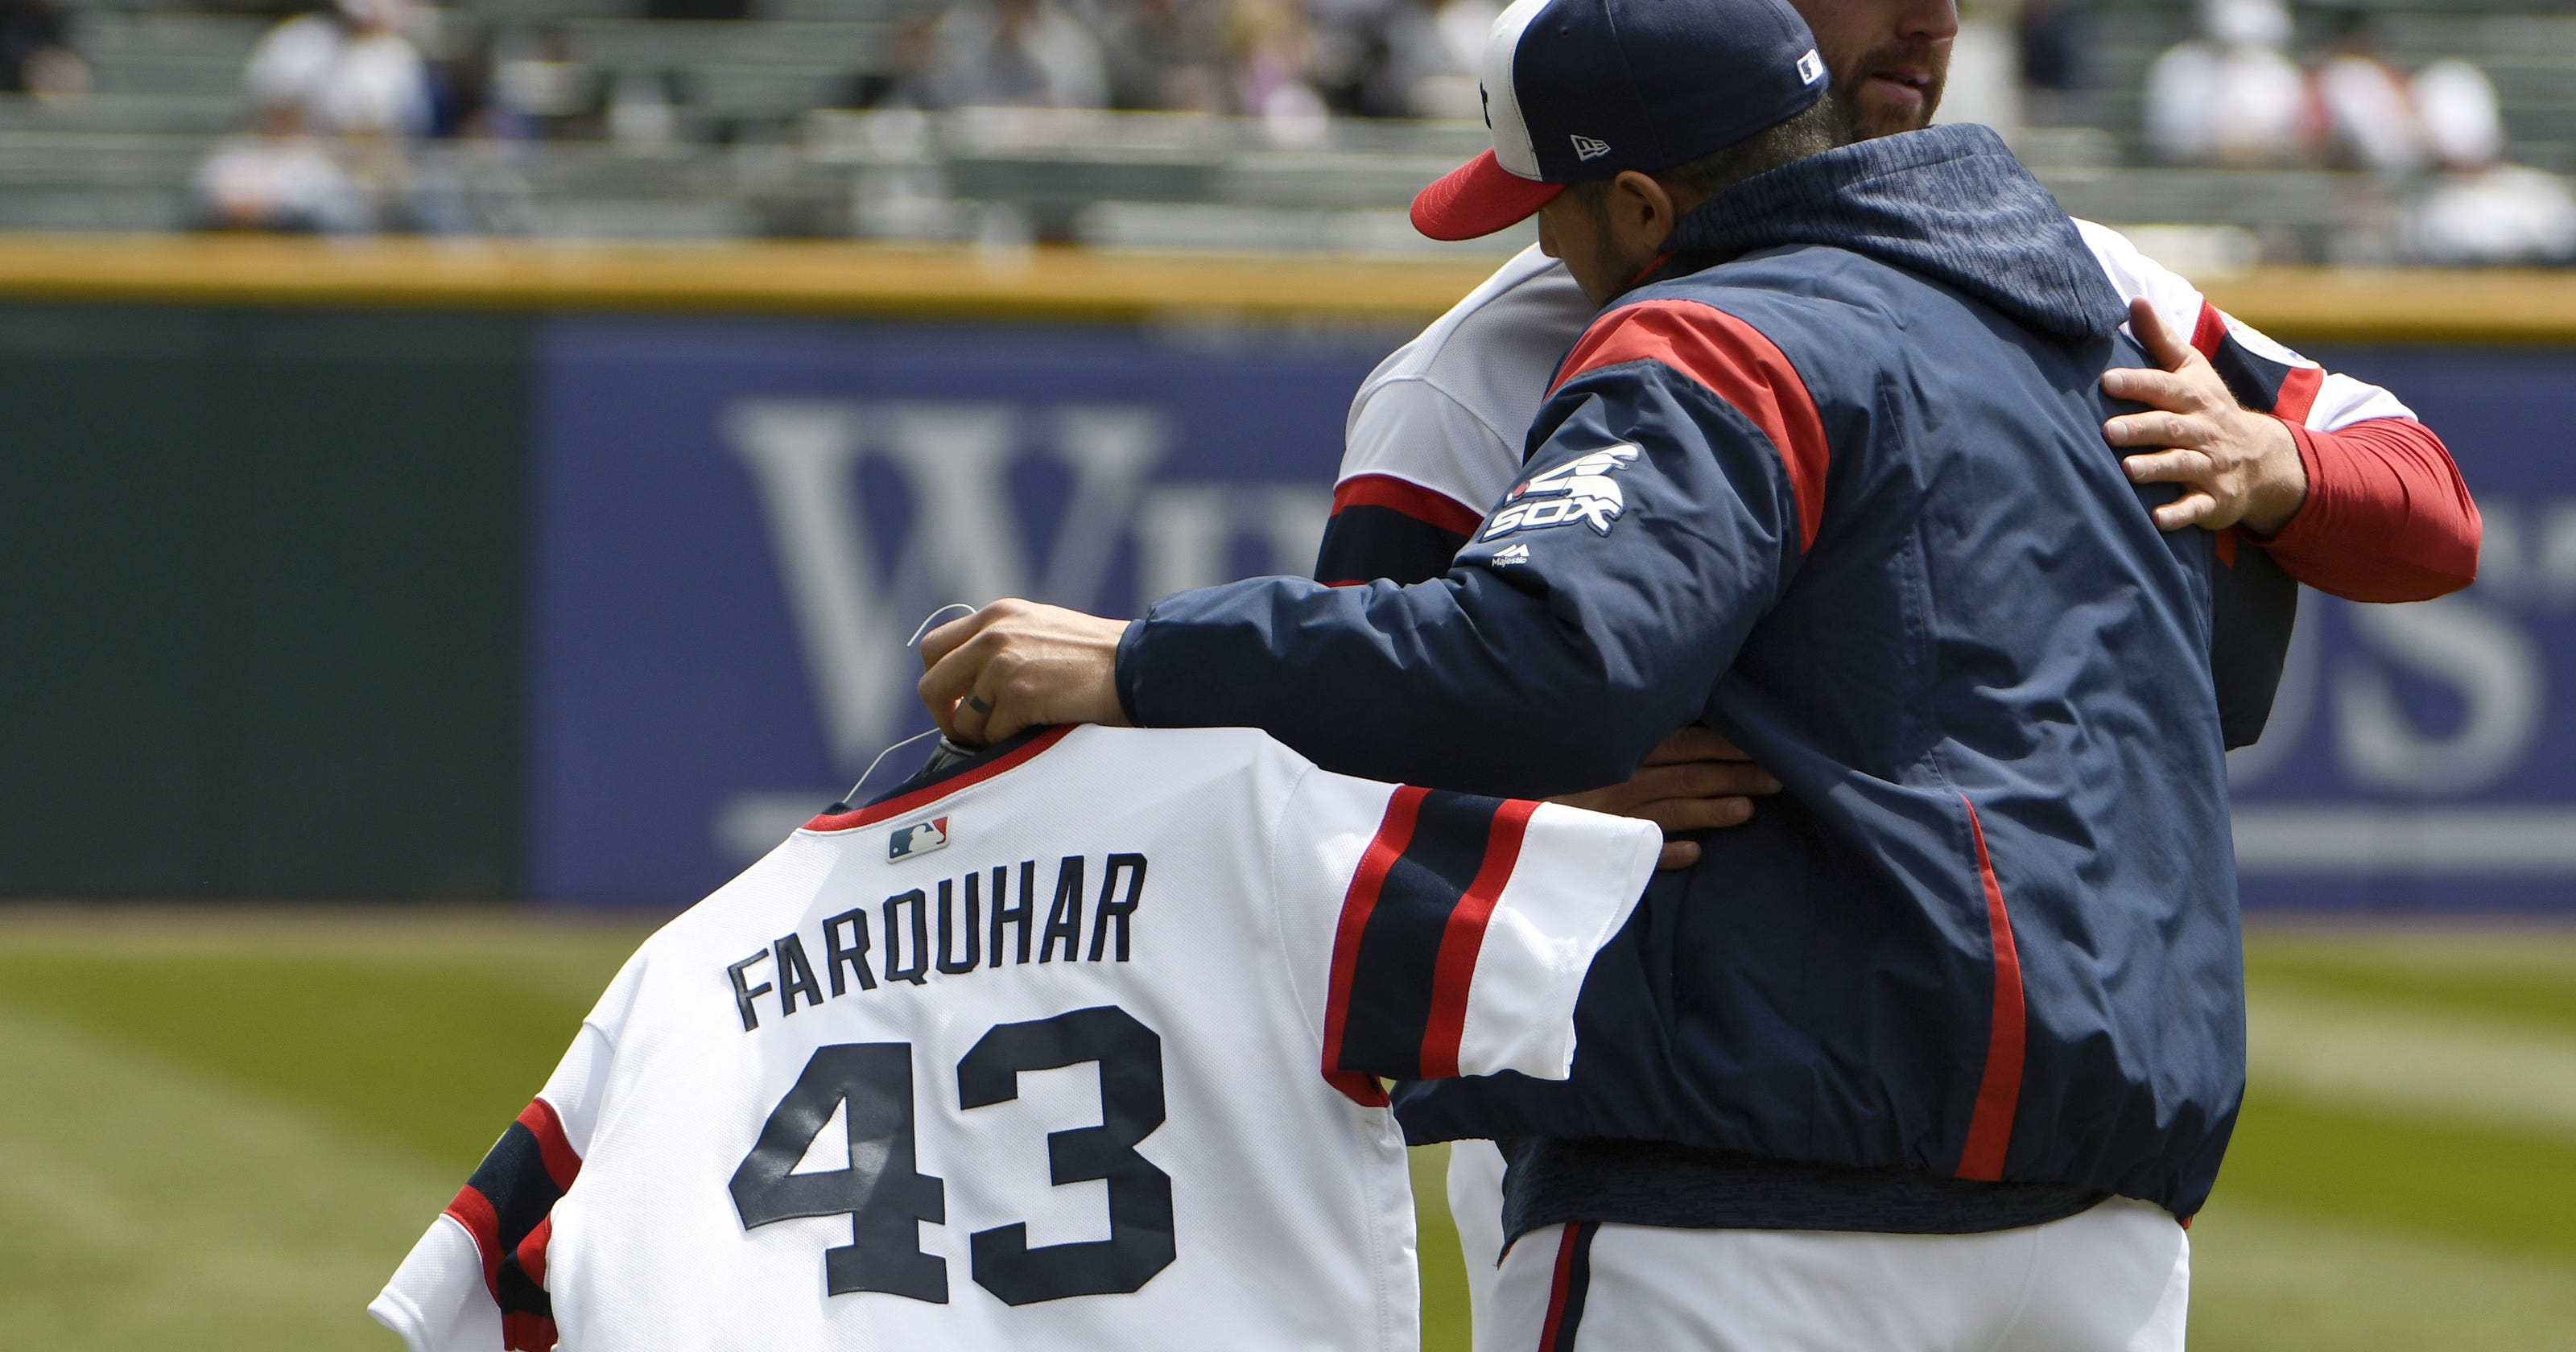 Danny Farquhar fights for life as friends pray for White Sox pitcher